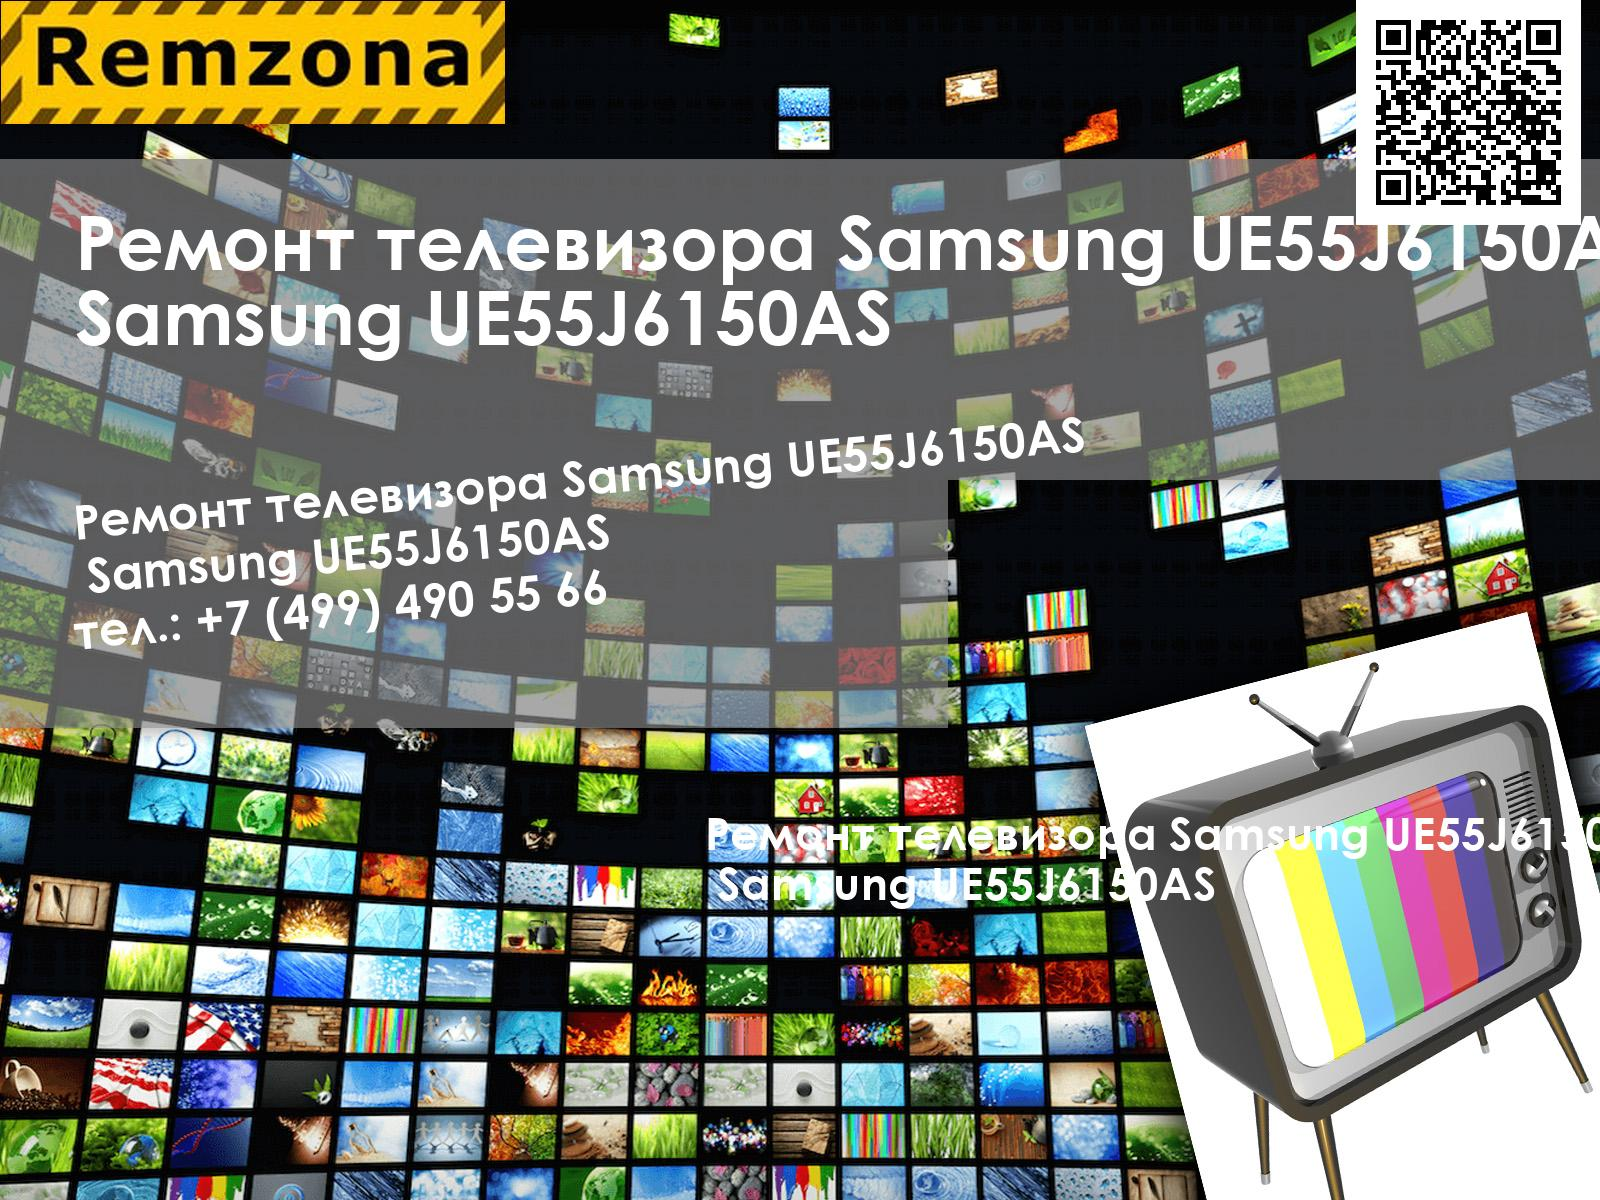 Ремонт телевизора Samsung UE55J6150AS